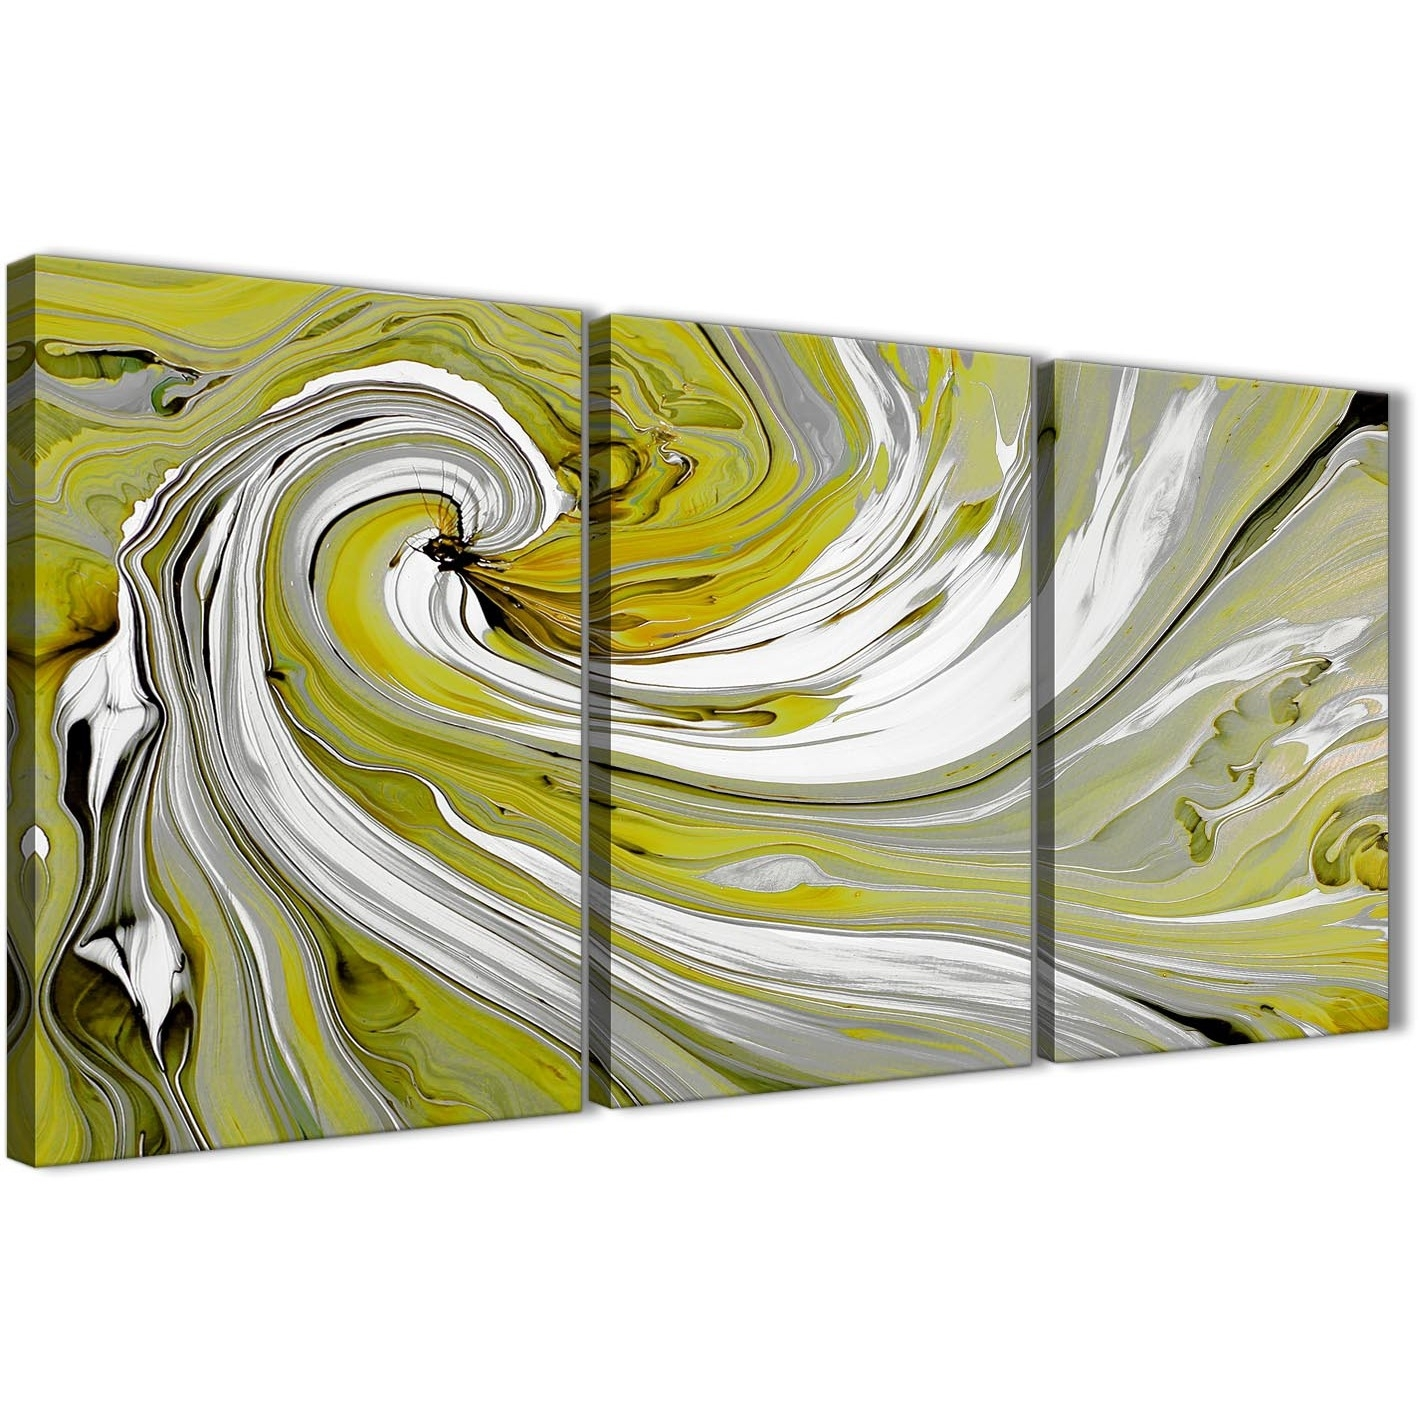 Lime Green Swirls Modern Abstract Canvas Wall Art – Split 3 Piece Inside Most Up To Date Lime Green Canvas Wall Art (View 15 of 15)